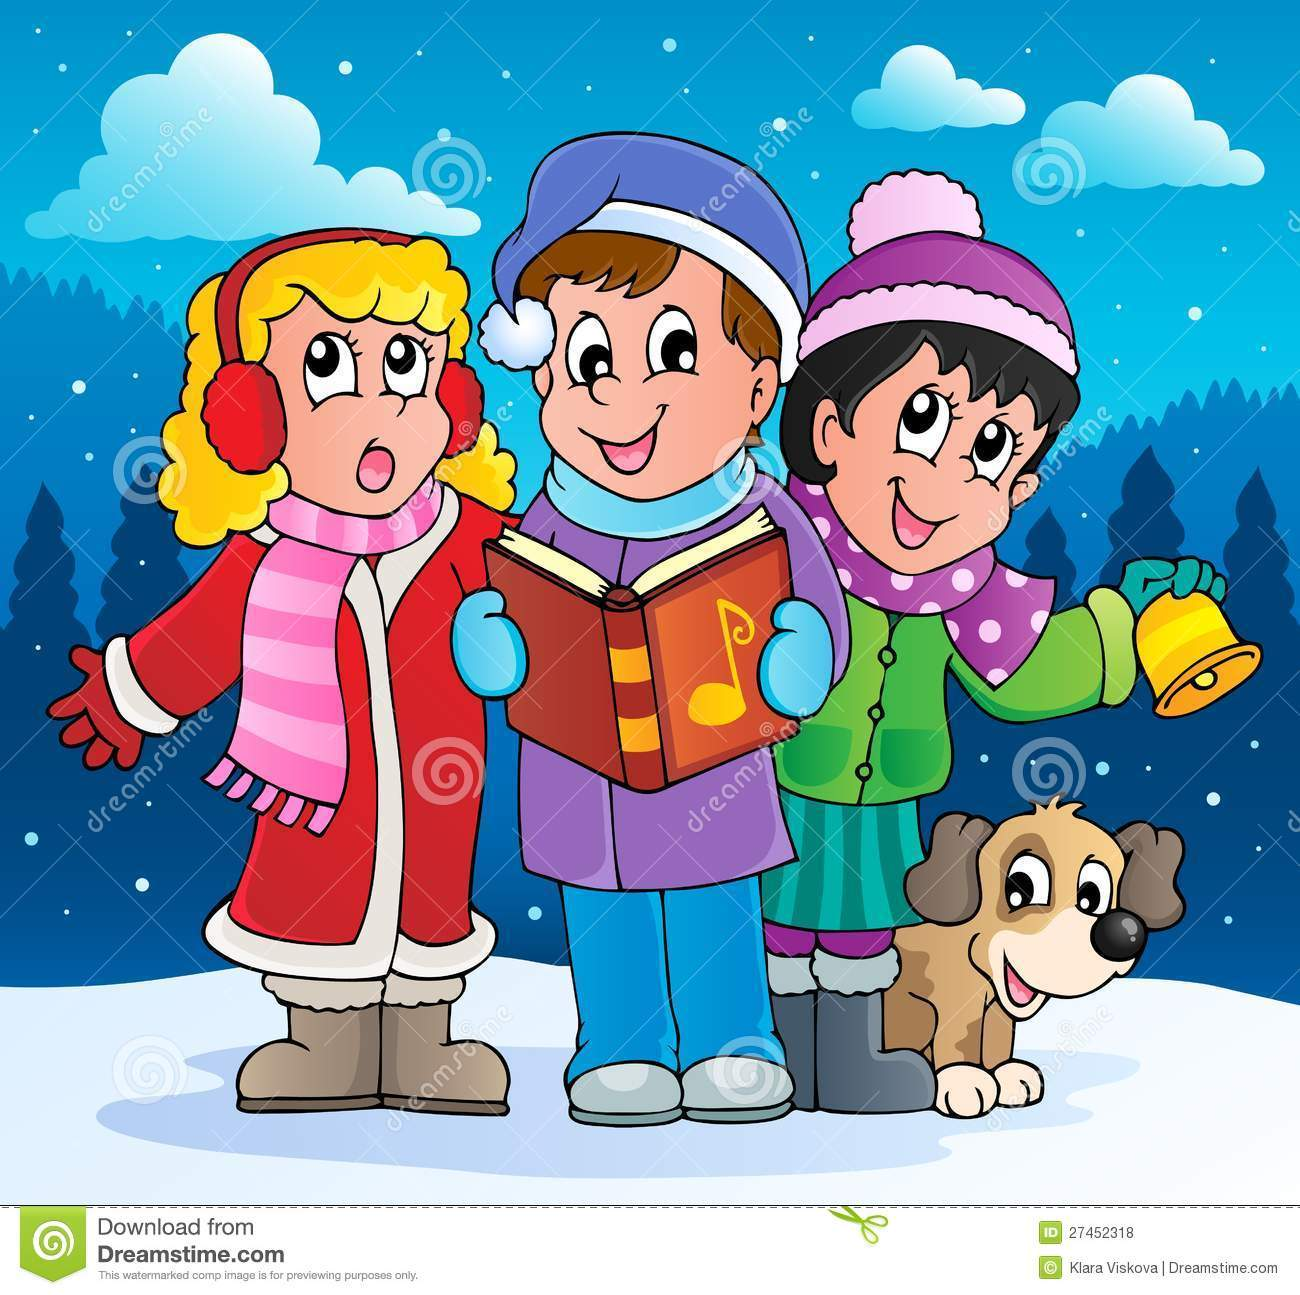 Christmas carol singers clipart free 5 » Clipart Portal.